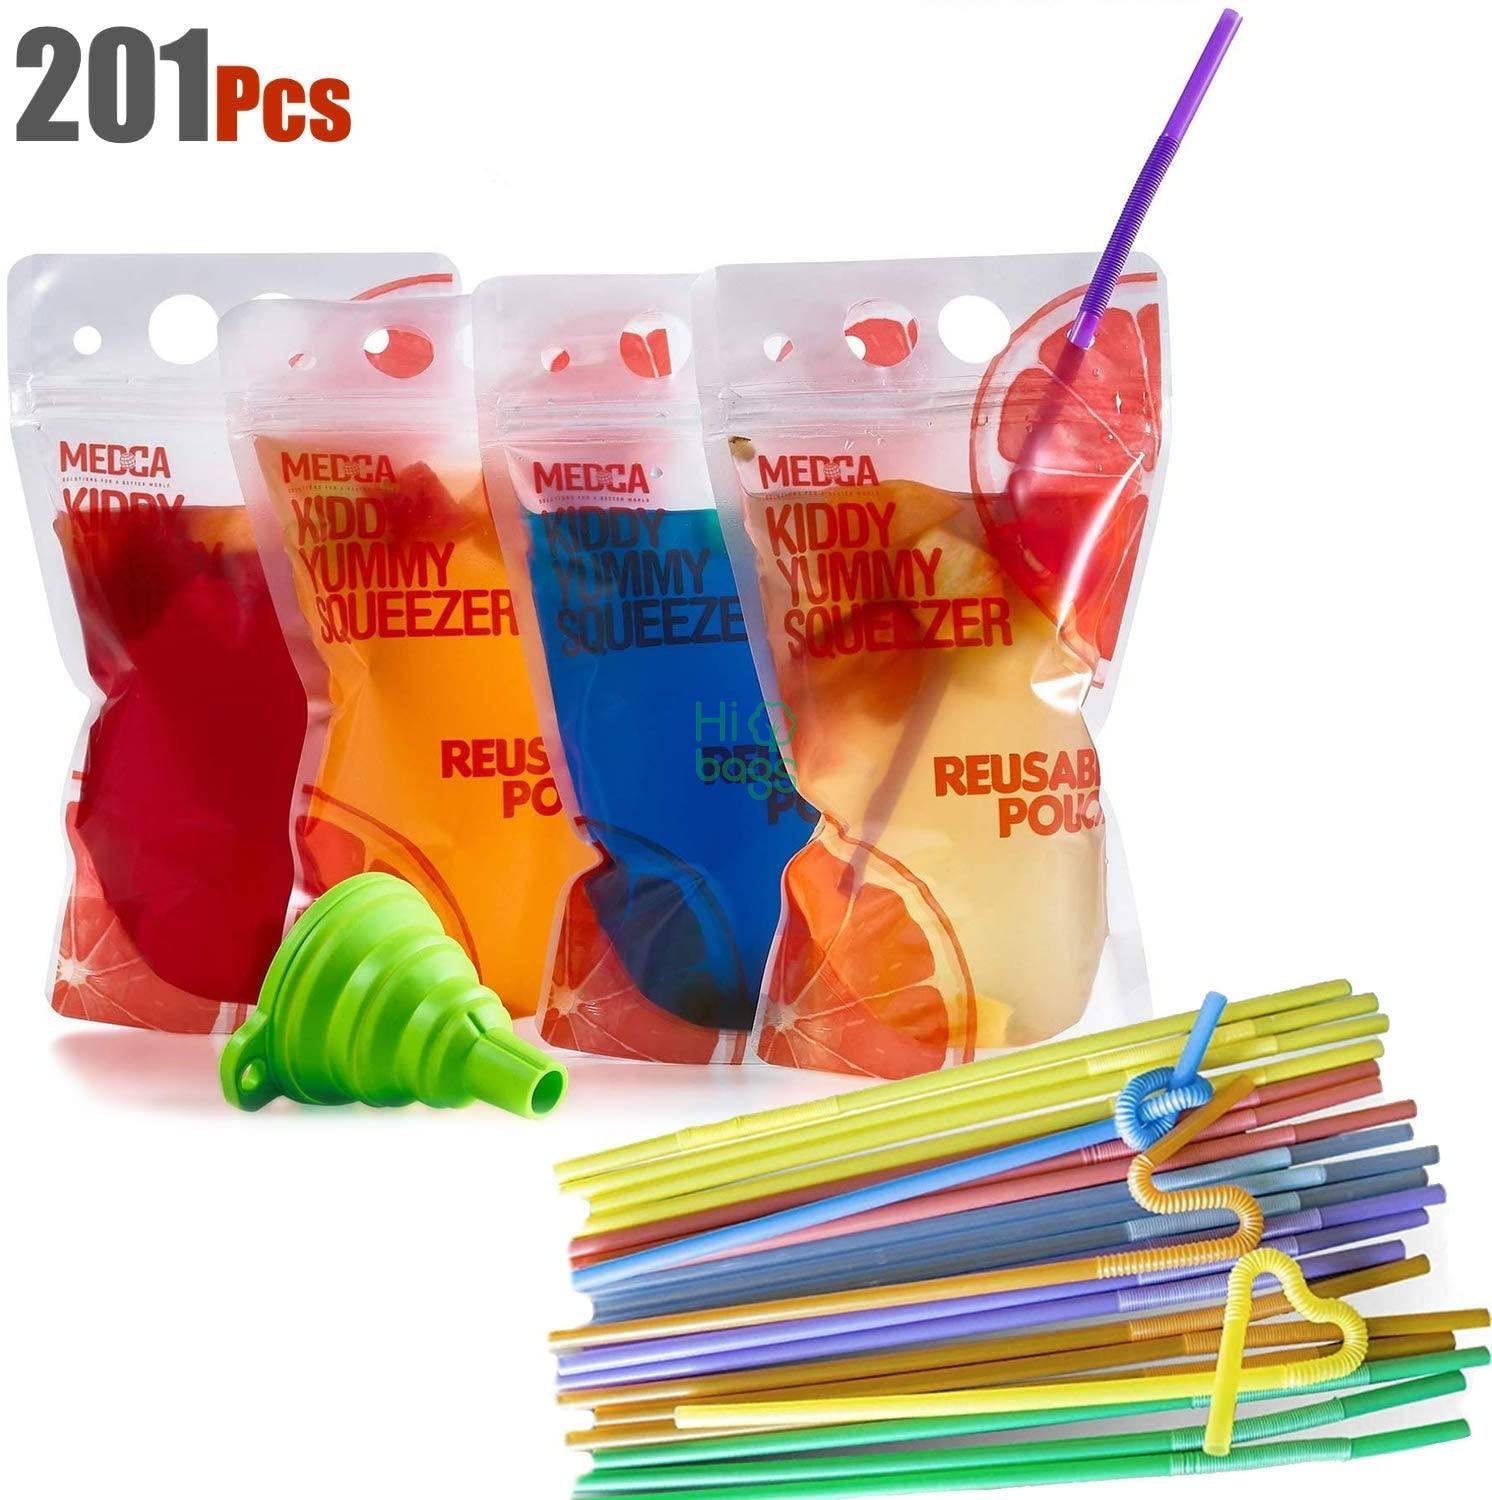 Reusable Drink Pouches Double Zipper Reusable Smoothie Juice Clear Zipper Pouch Storage Bags M